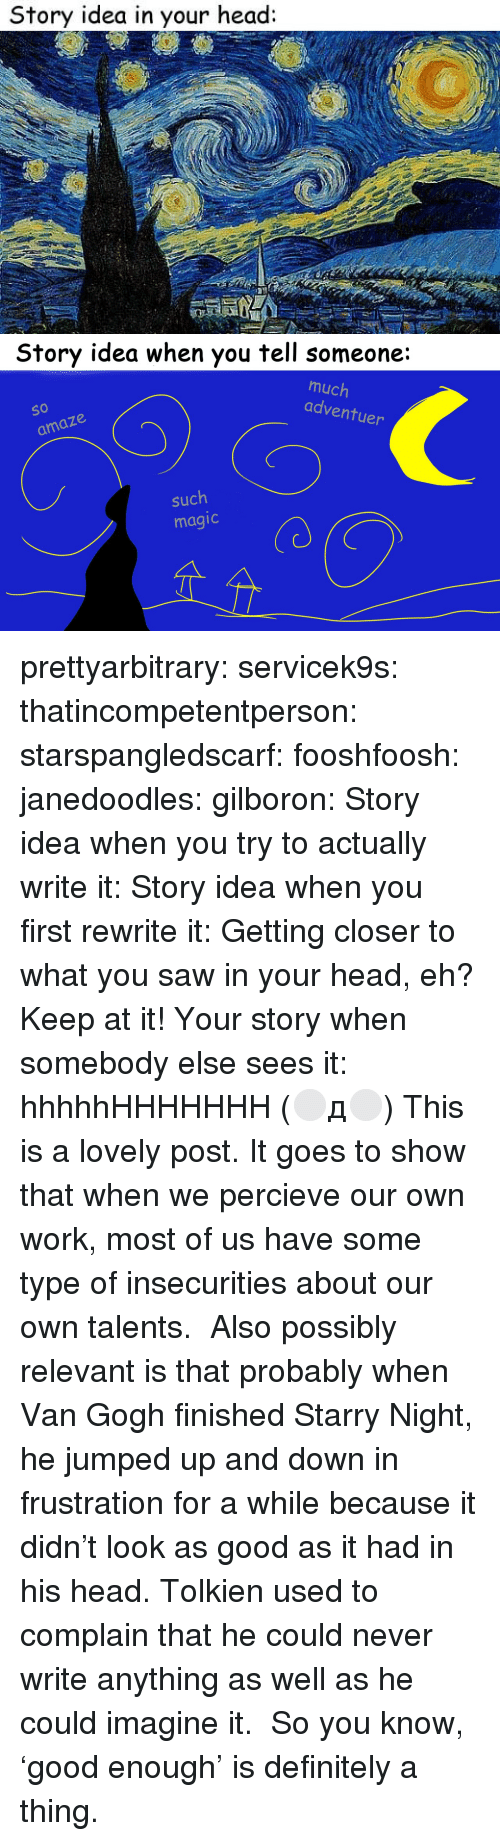 Definitely, Fake, and Head: Story idea in your head:   Story idea when you tell someone:  much  adventu  So  O 10  er  amaze  such  magic prettyarbitrary: servicek9s:  thatincompetentperson:  starspangledscarf:  fooshfoosh:  janedoodles:  gilboron:  Story idea when you try to actually write it:  Story idea when you first rewrite it:  Getting closer to what you saw in your head, eh? Keep at it!  Your story when somebody else sees it:      hhhhhHHHHHHH  (⚪д⚪)  This is a lovely post. It goes to show that when we percieve our own work, most of us have some type of insecurities about our own talents.   Also possibly relevant is that probably when Van Gogh finished Starry Night, he jumped up and down in frustration for a while because it didn't look as good as it had in his head. Tolkien used to complain that he could never write anything as well as he could imagine it.  So you know, 'good enough' is definitely a thing.